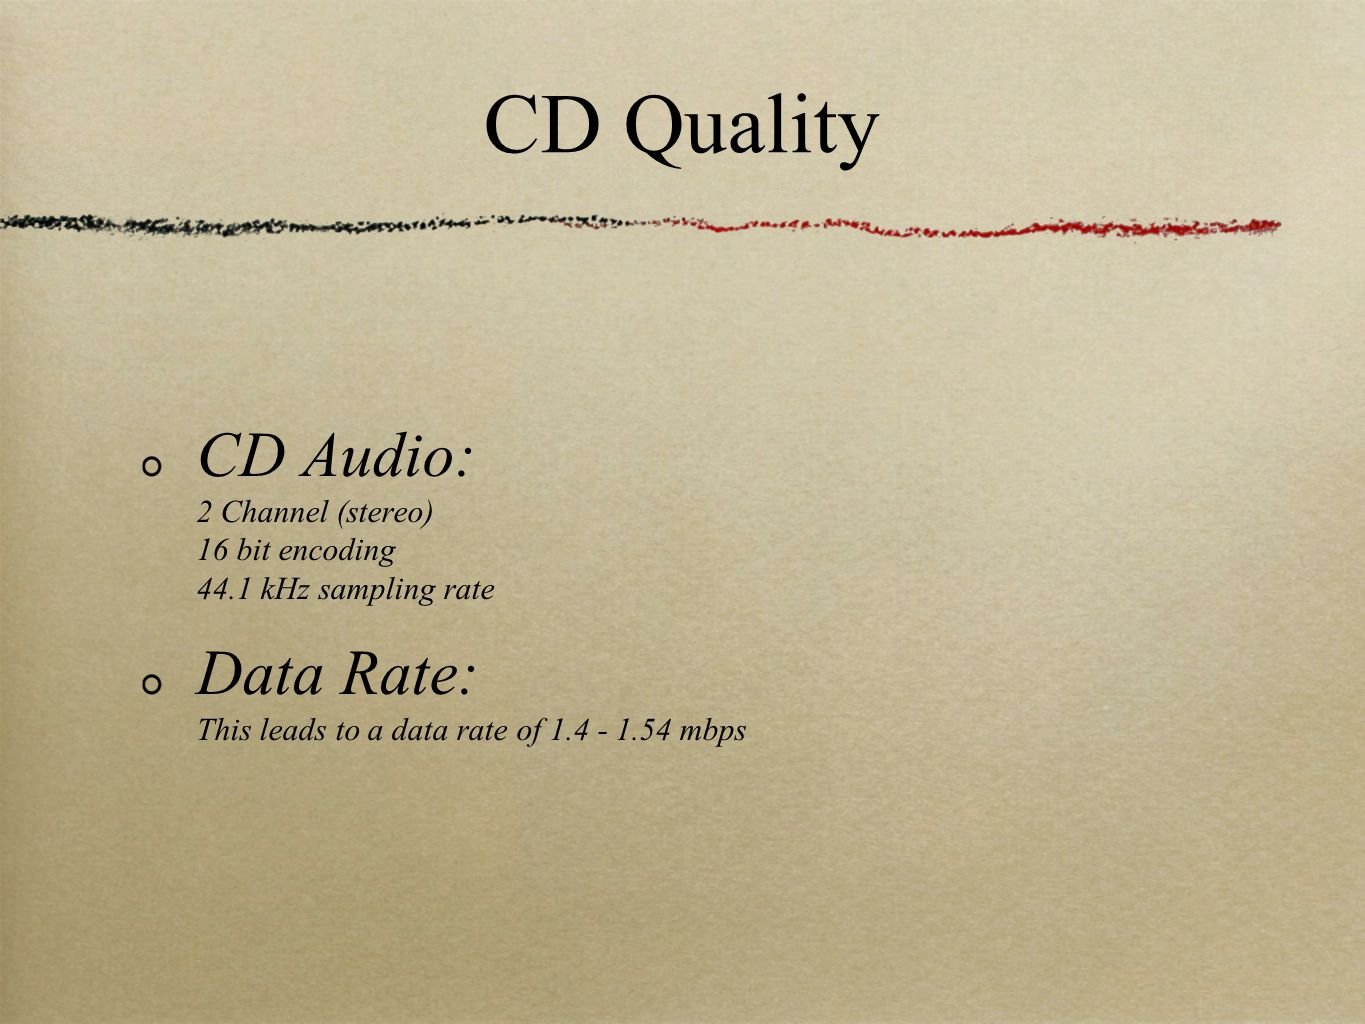 CD Quality CD Audio: 2 Channel (stereo) 16 bit encoding 44.1 kHz sampling rate Data Rate: This leads to a data rate of mbps